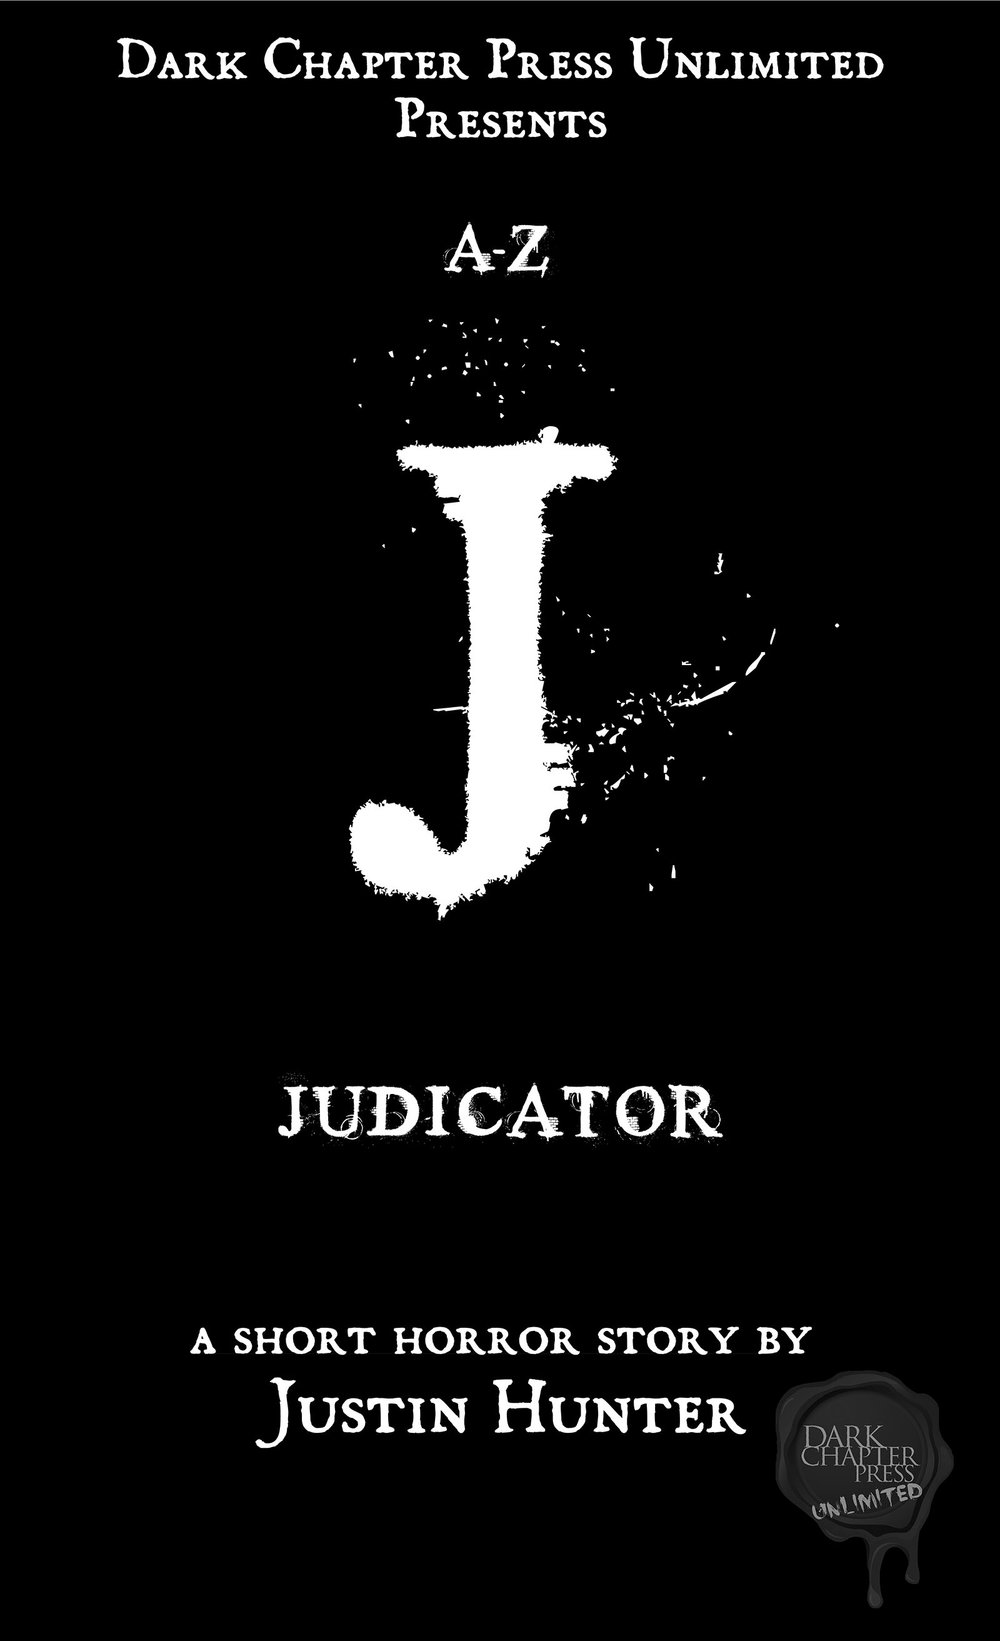 Judicator, by Justin Hunter A nuclear bunker: A defensive fortification, military or otherwise, that is designed to protect small pockets of humanity from falling nuclear bombs or similar, catastrophic attacks.Some are government issue, some are homemade, but most are never used. Bunkers are a symbol of hope,a way to protect the lineage of the human race,and are designed to offer a safe refuge to people should the unexpected occur. Nuclear war, after all, is very unlikely. Governments have numerous treaty's in place, strict rules to abide by, masses of red tape. It can never happen to the everyday person. Right?